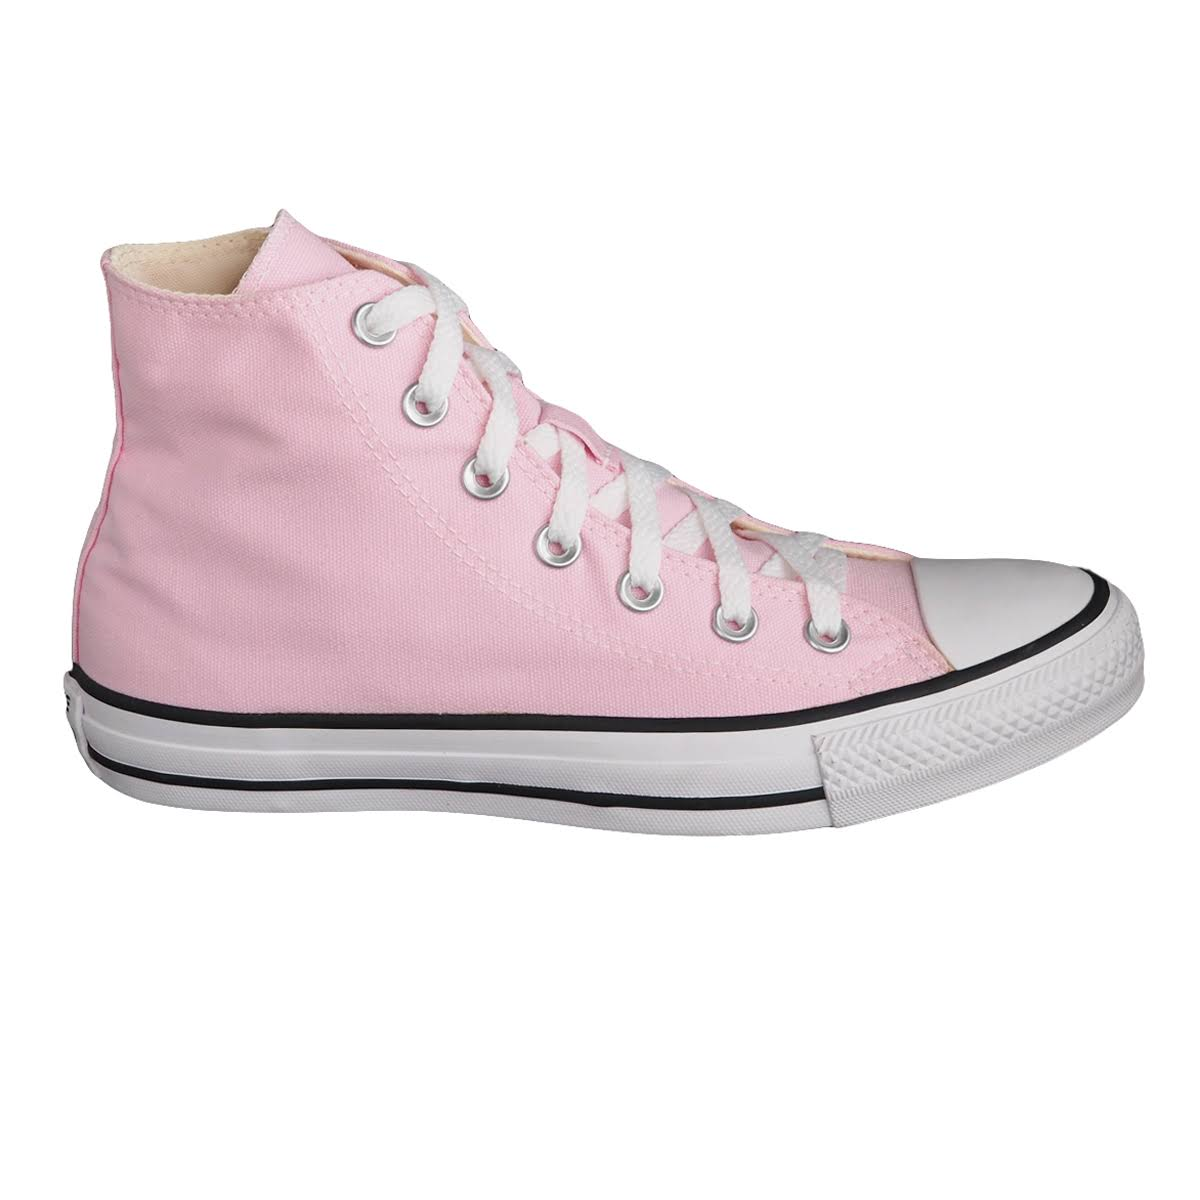 All Taylor Rosa Star Shoes Converse Ciao Chuck 2EDIWH9